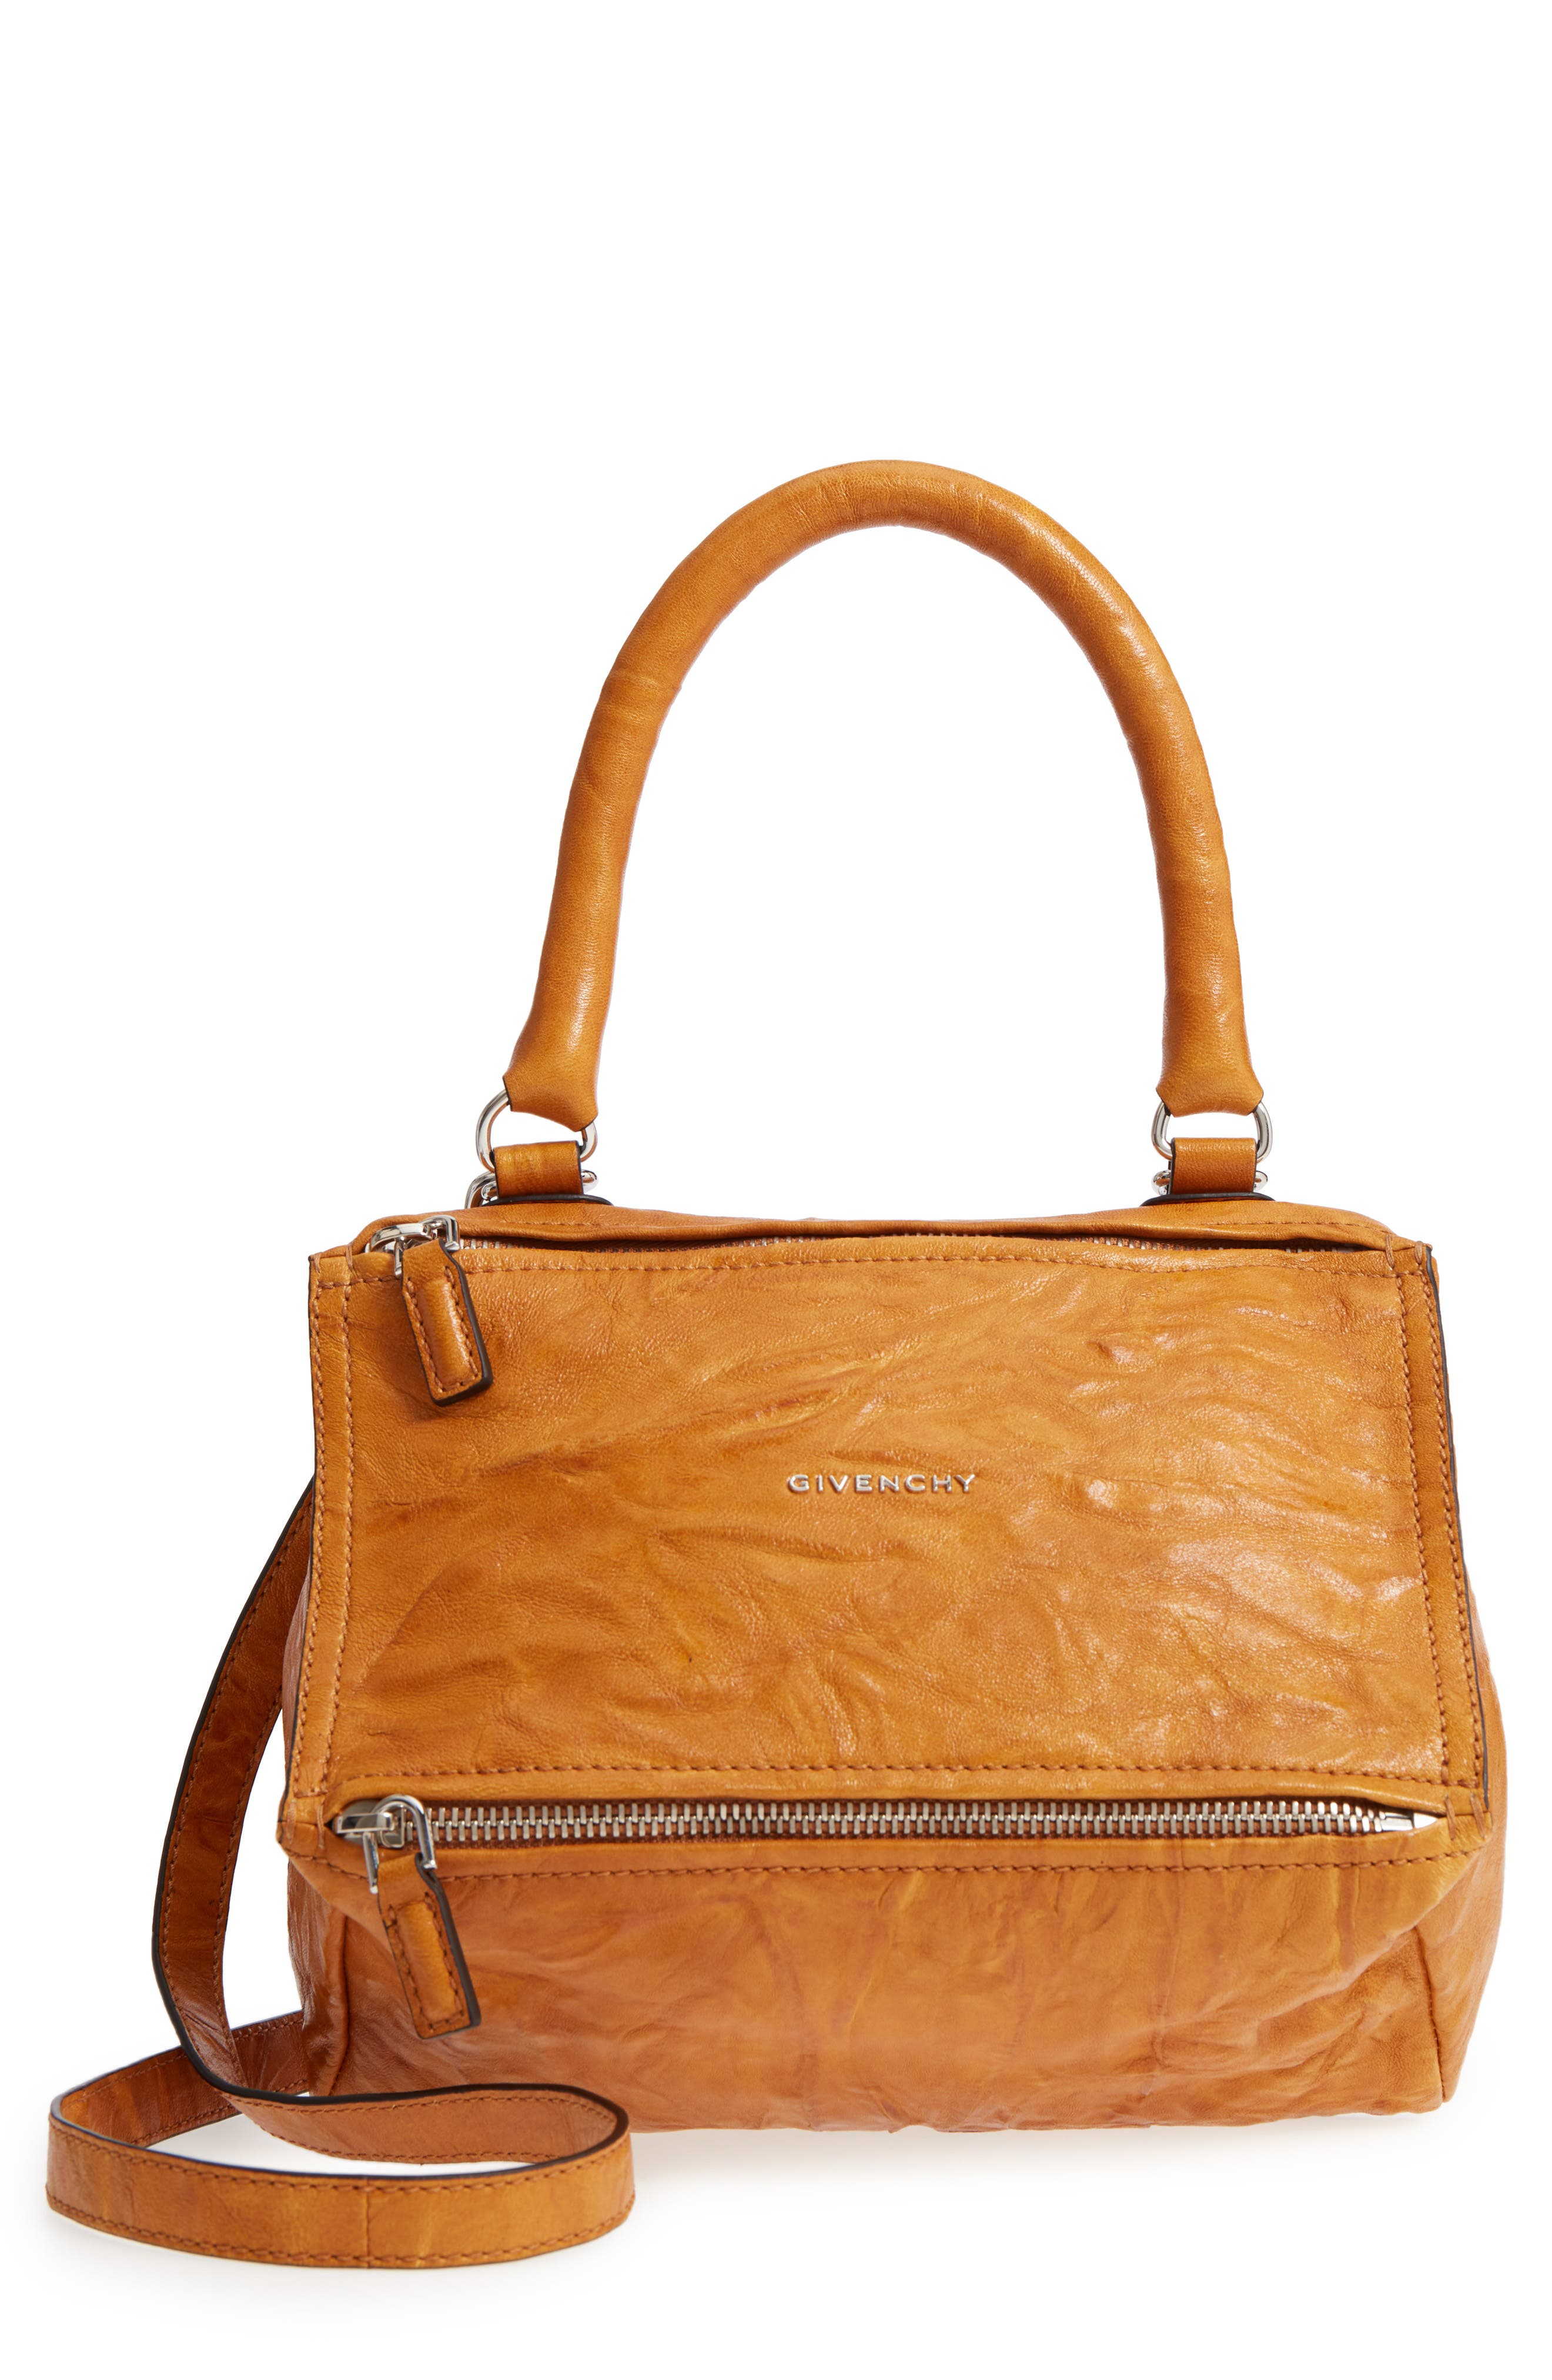 'Small Pepe Pandora' Leather Shoulder Bag,                         Main,                         color, Amber